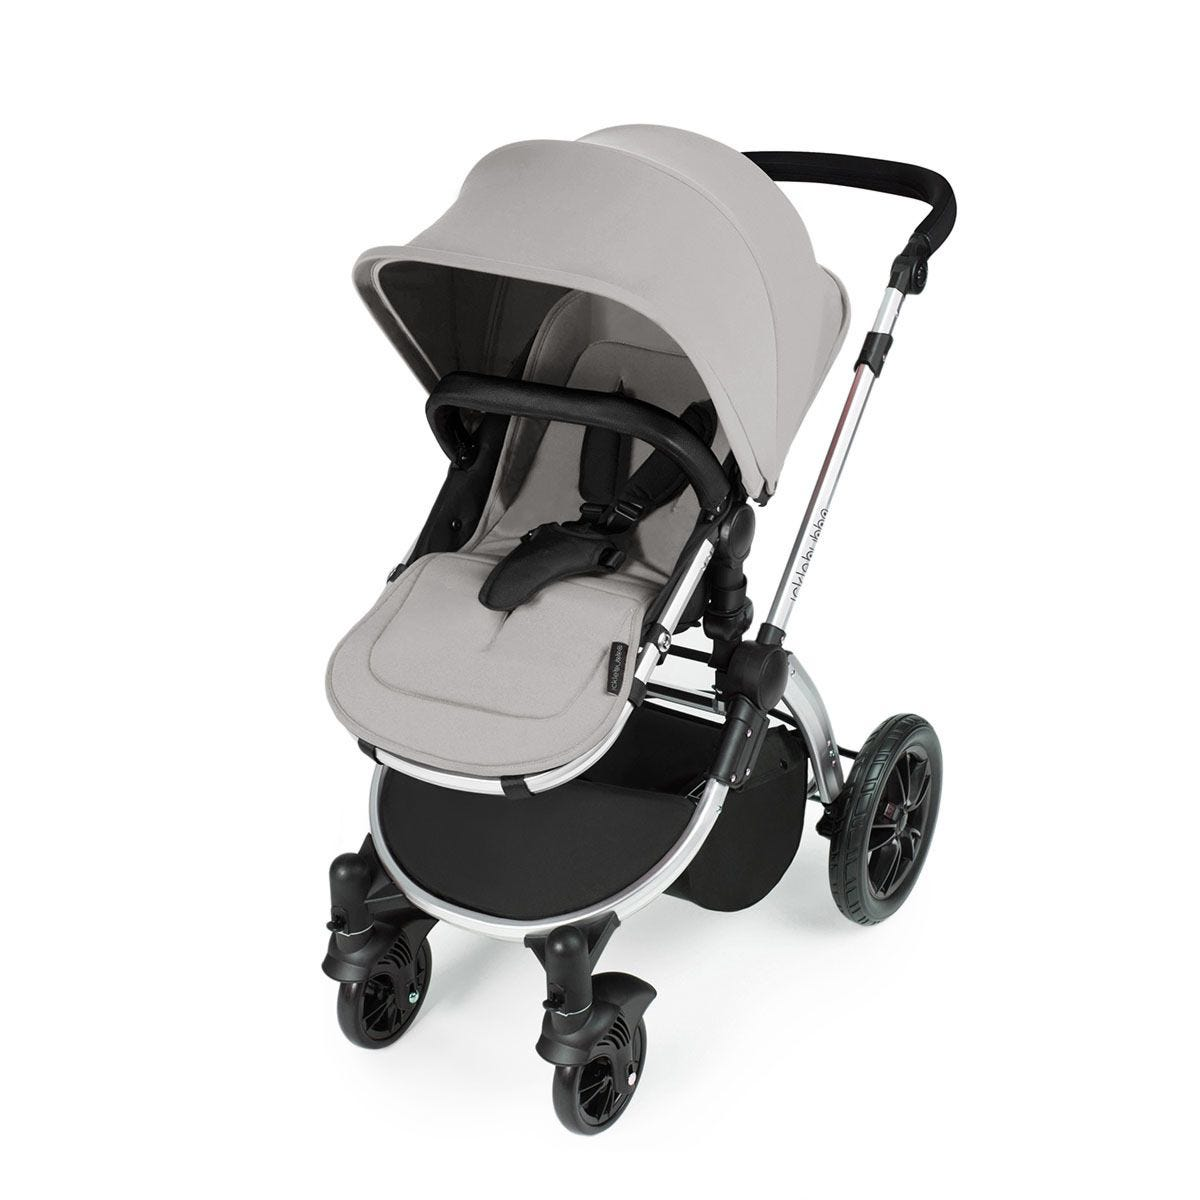 Ickle Bubba Stomp V3 i-Size Travel System with Isofix Base -Silver on Silver with Black Handles